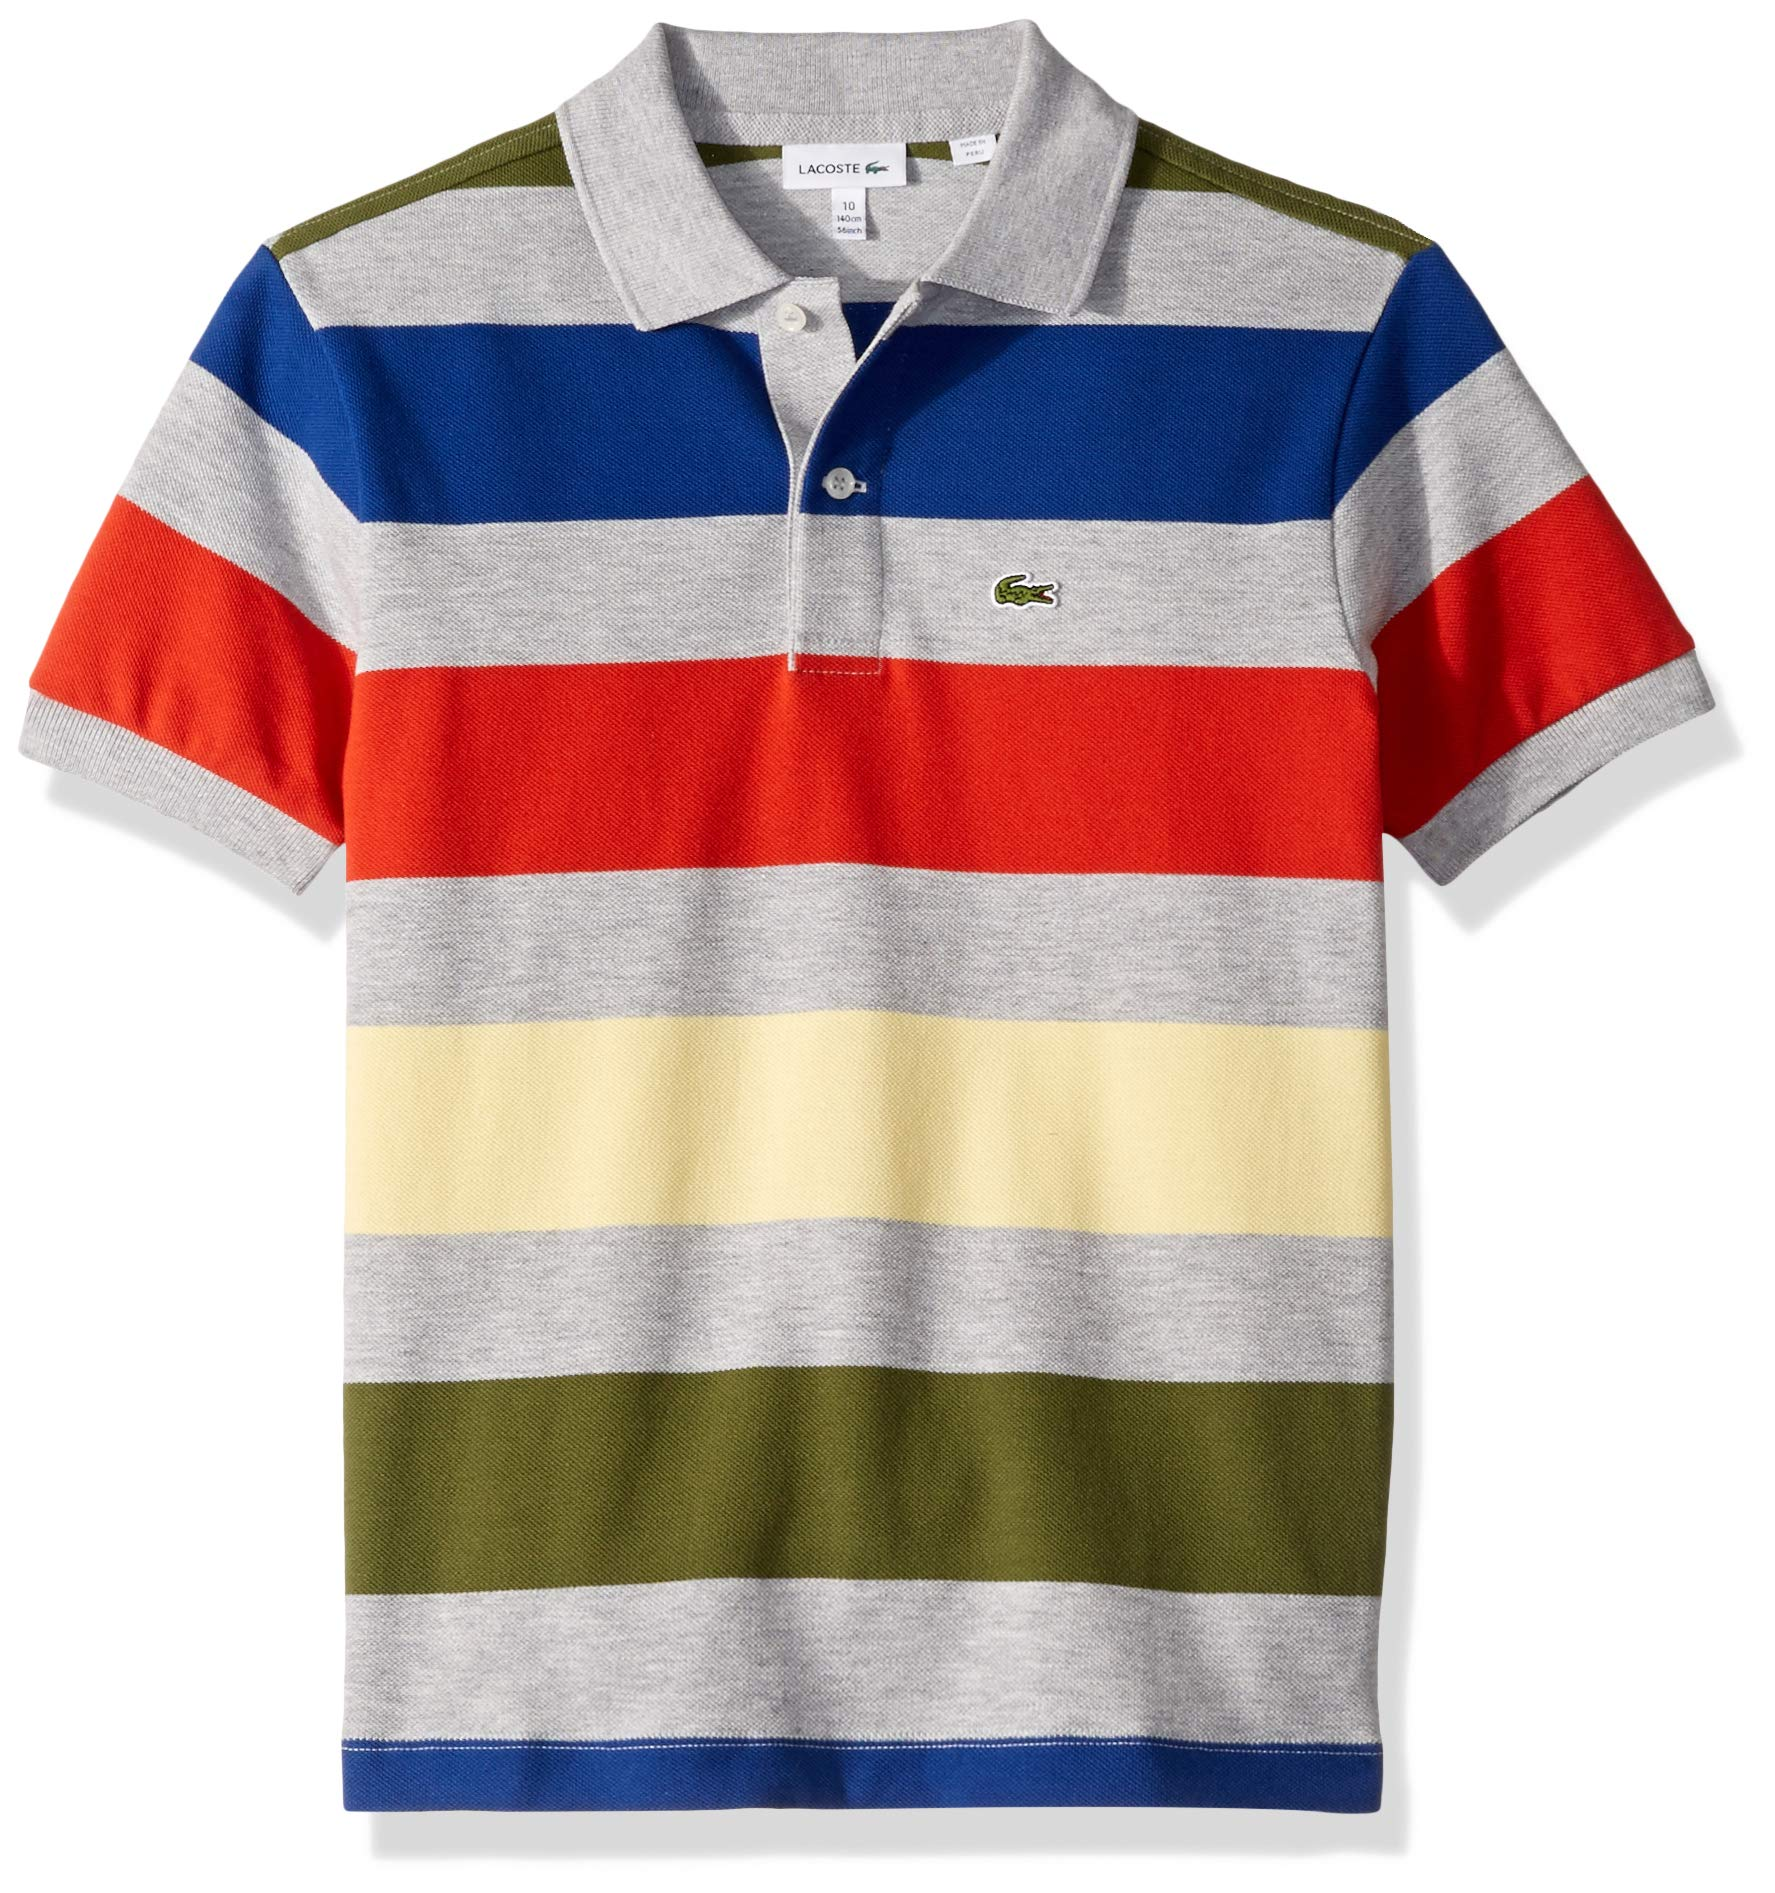 Lacoste Toddler BOY Colorful Striped Pique Polo, Silver Chine/Multi, 3YR